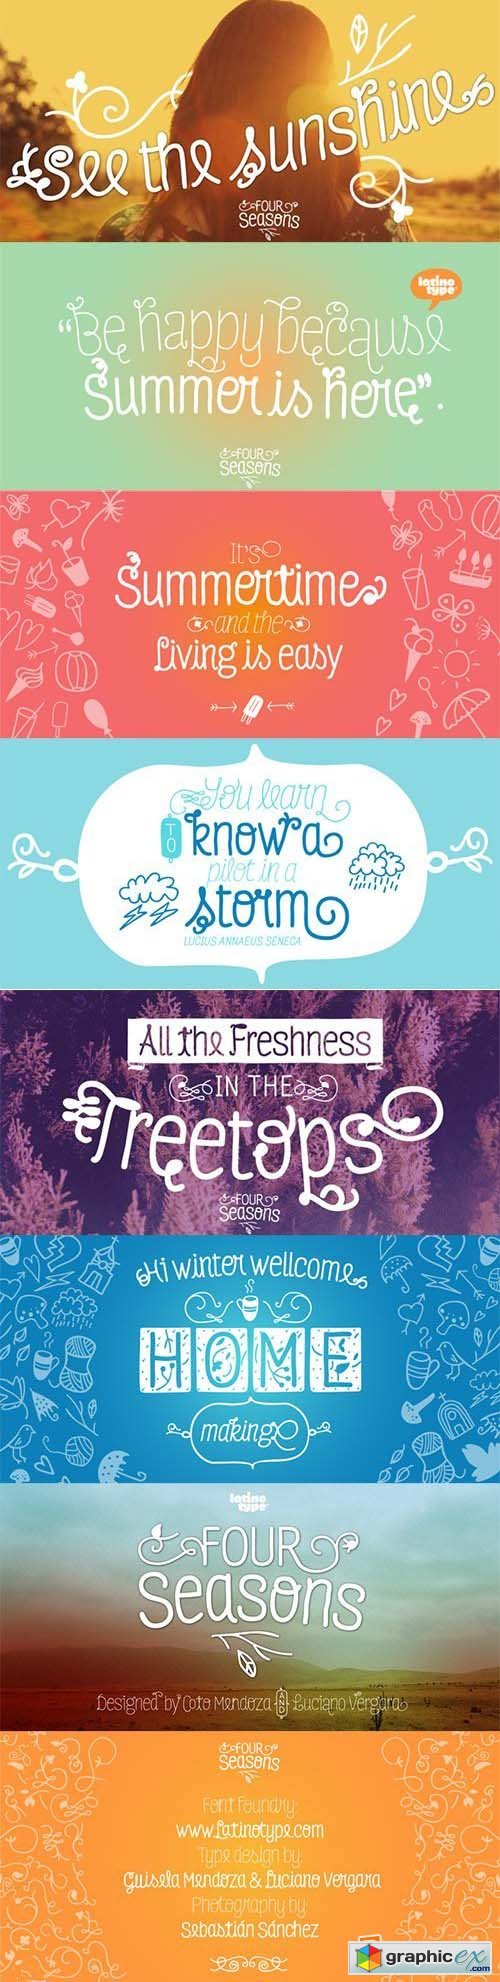 Four Seasons Font Family - 11 Fonts $429